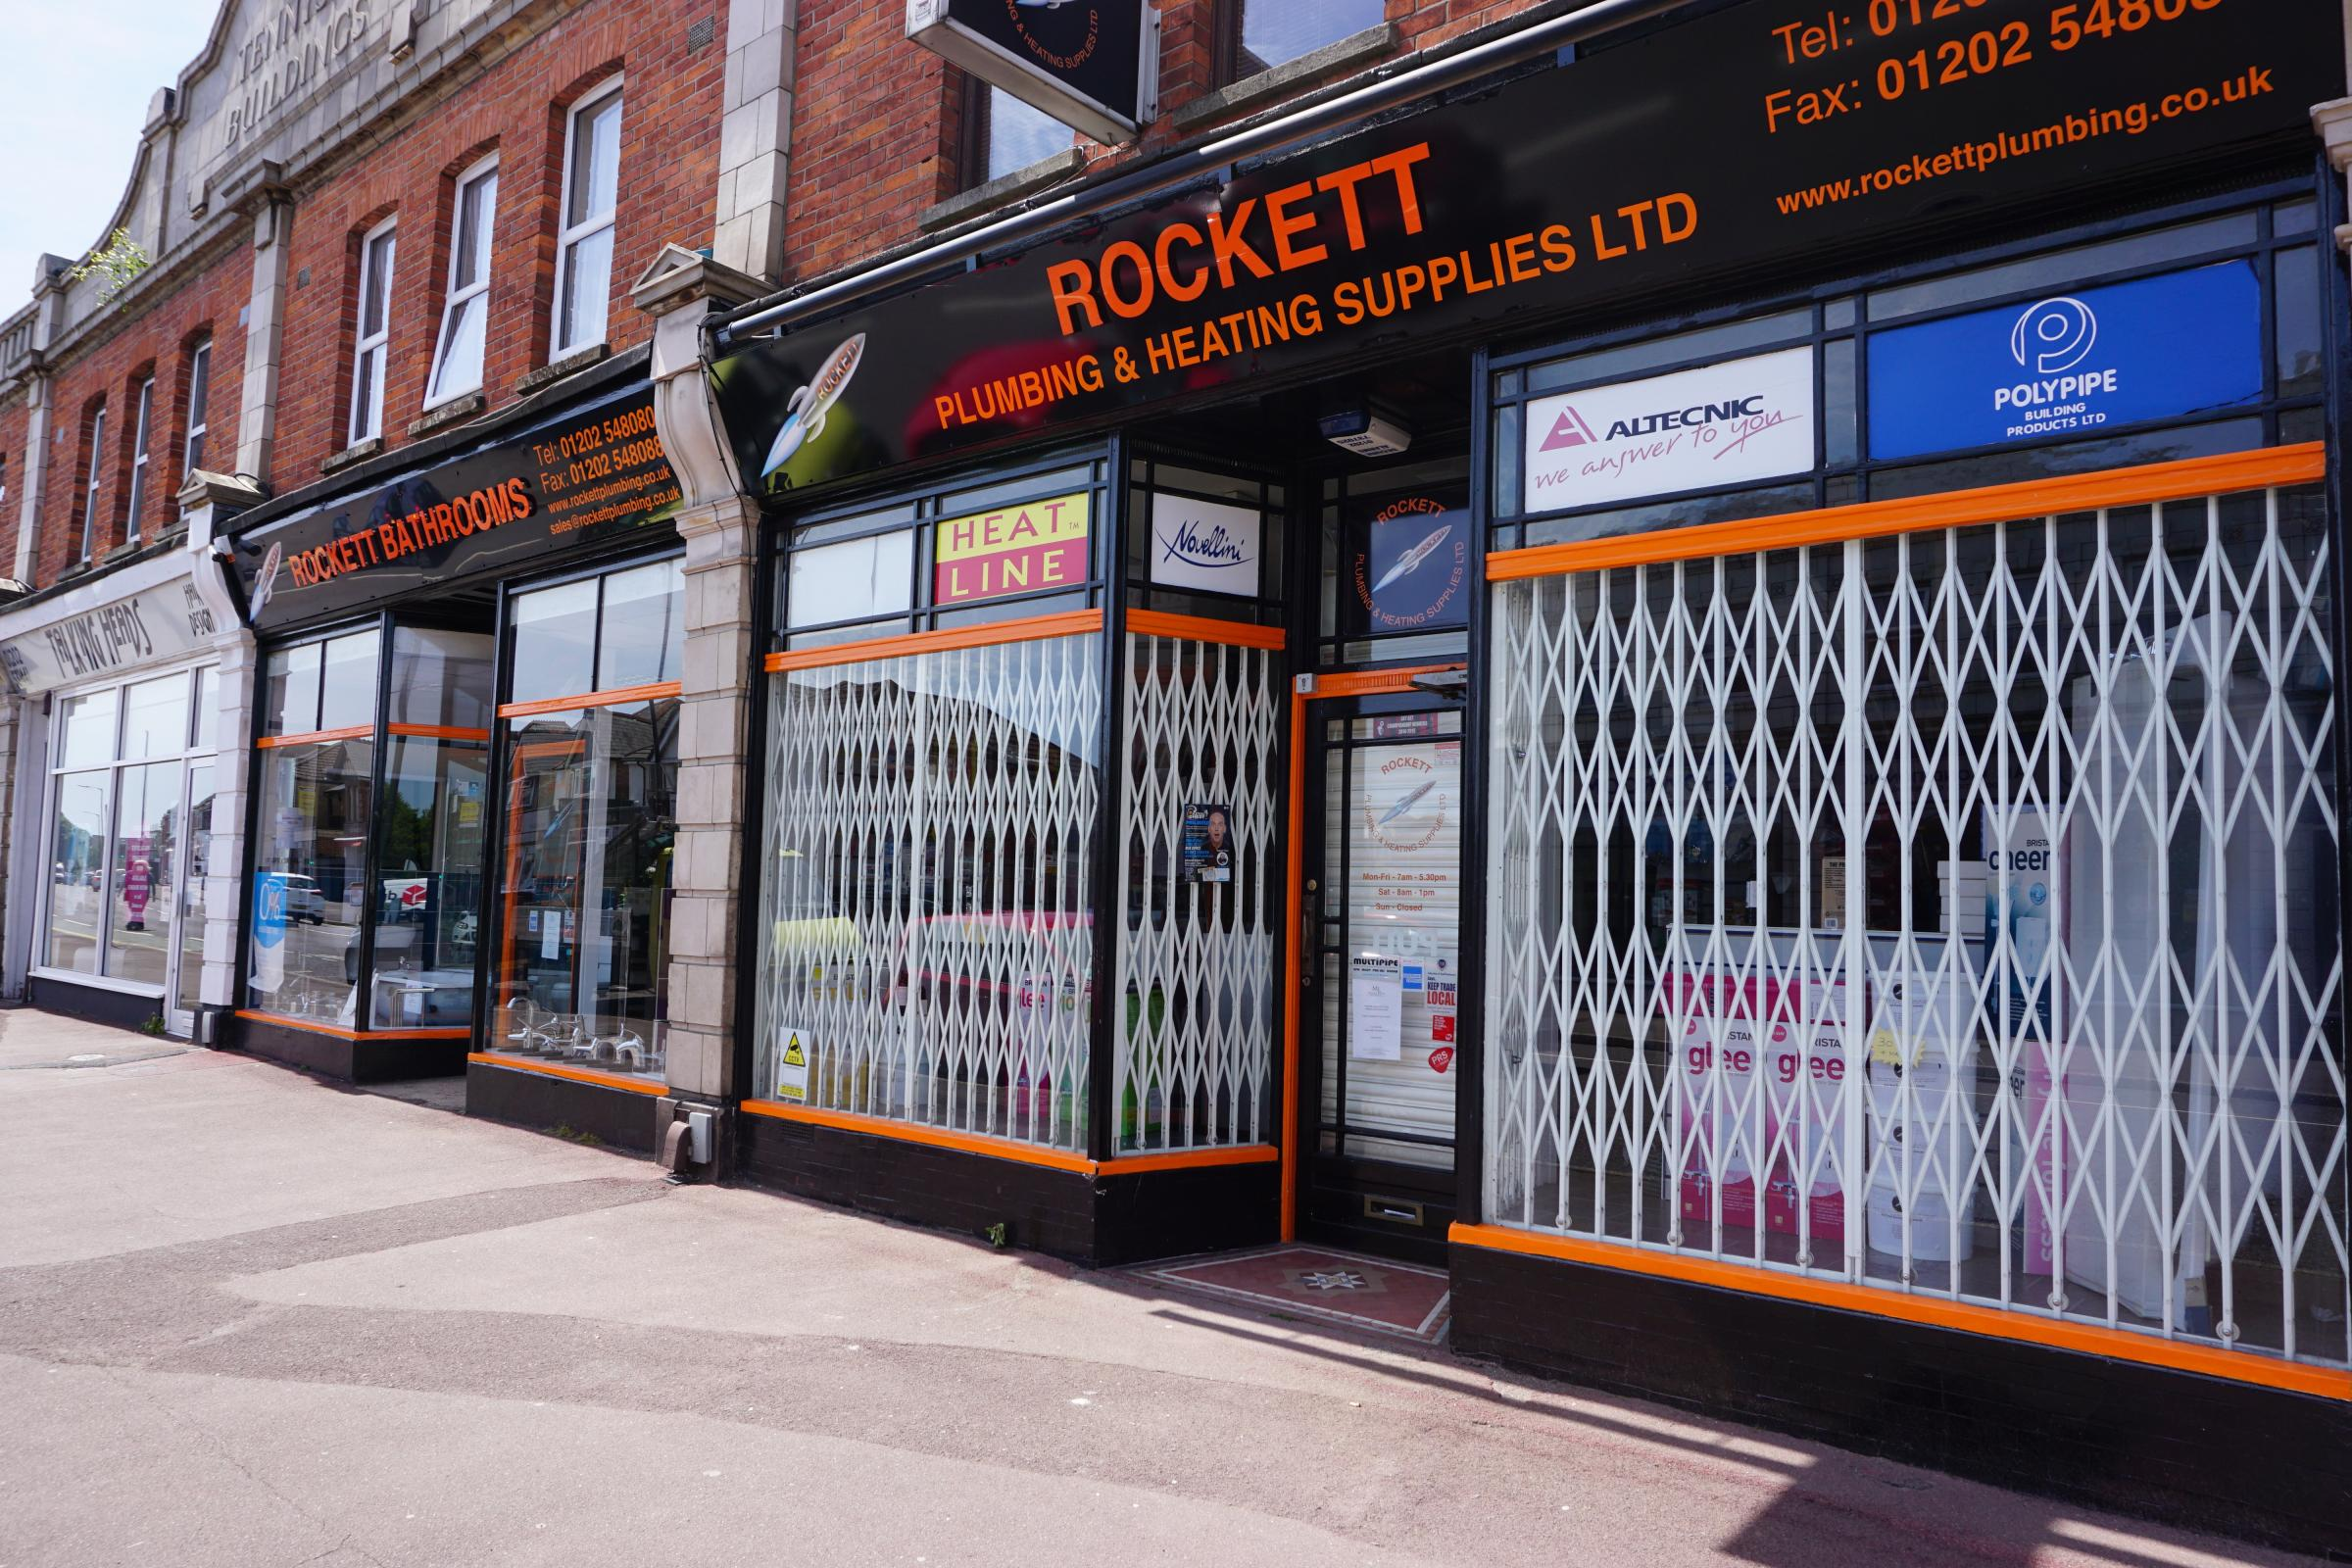 Rockett Plumbing & Heating Supplies in Wimborne Road, Bournemouth, closed in 2017